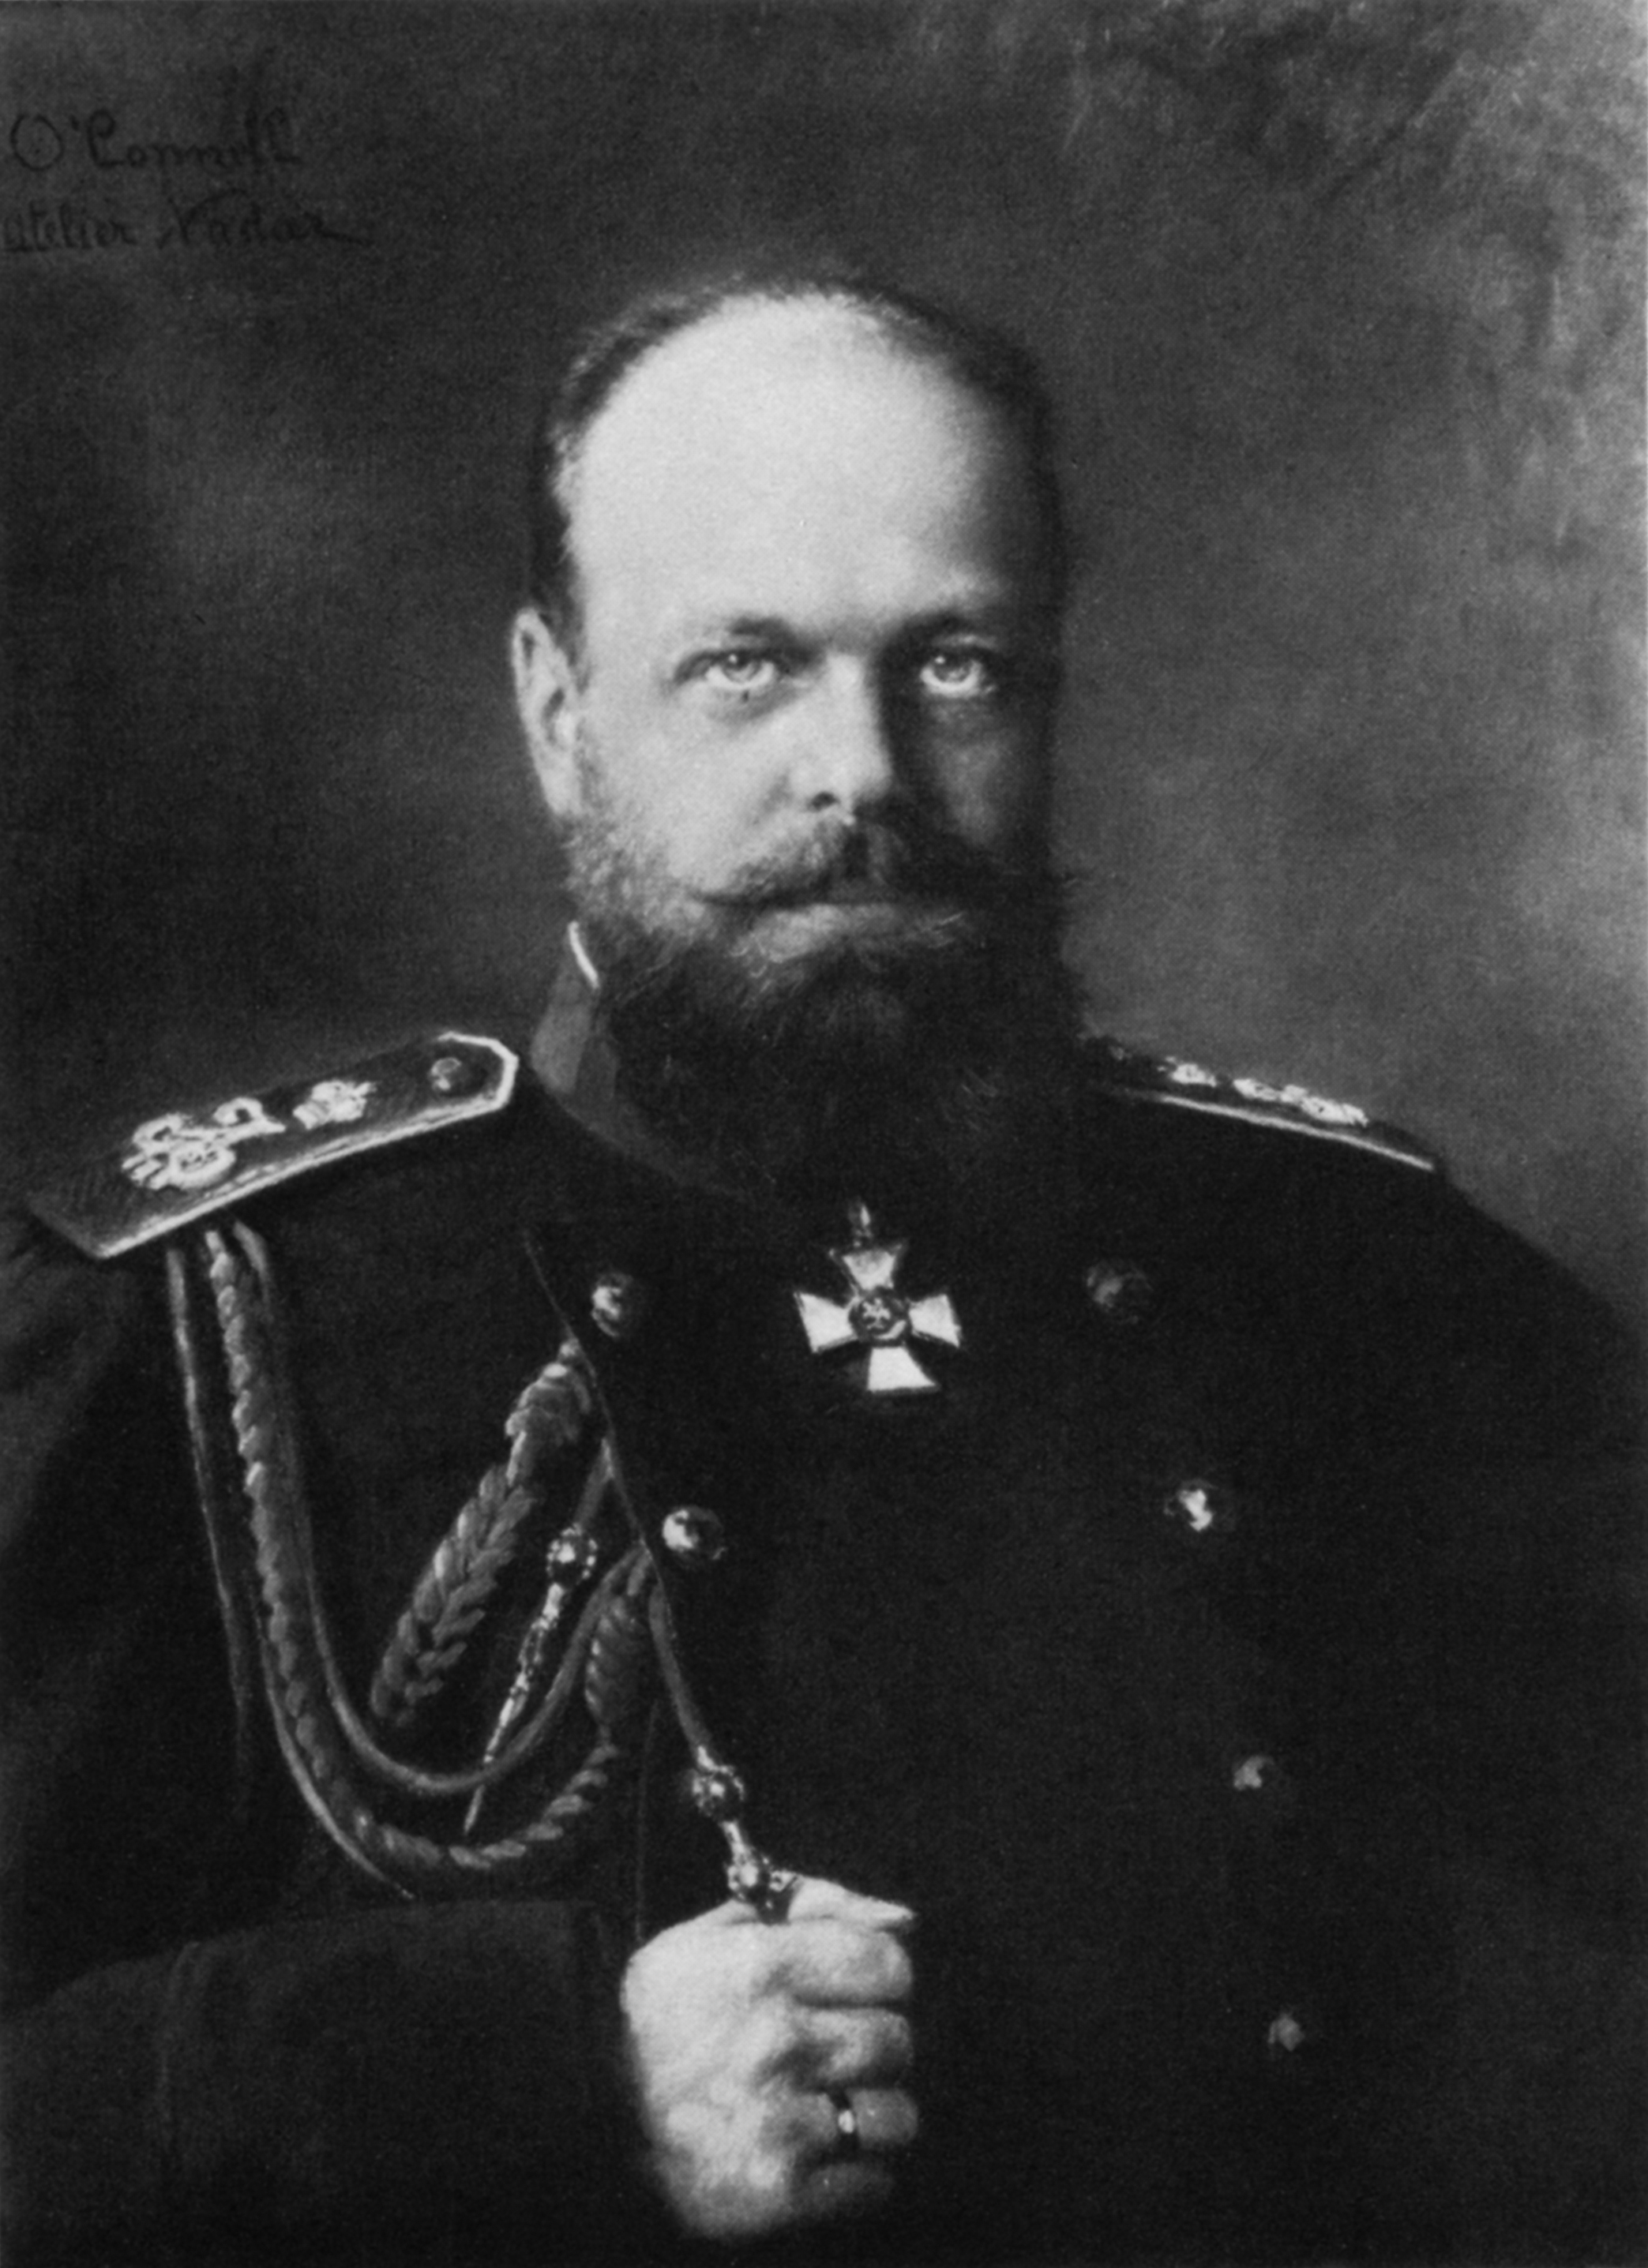 the reactionary policies of tsar alexander The reign of alexander iii did a great deal to extend the power of the tsar at the expense of liberties taken for granted in western europe however, it needed a like-minded man keen to involve himself in the hard work of government to succeed alexander iii if the reforms were to have a lasting impact.